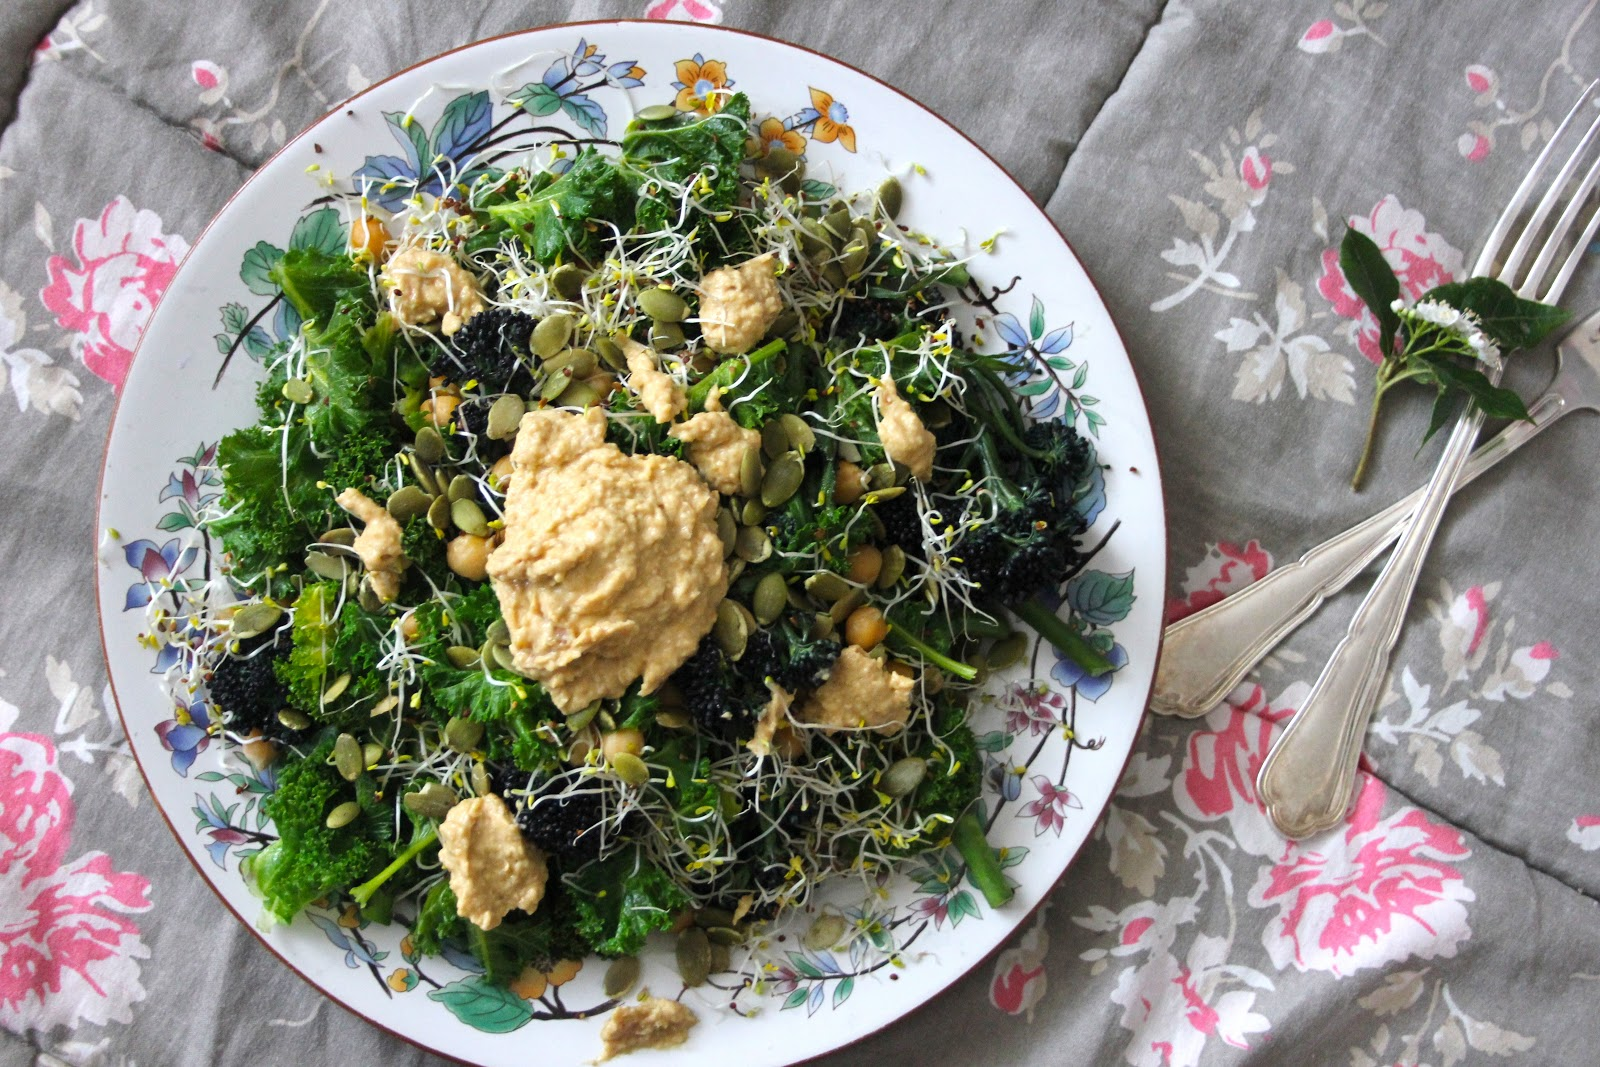 How to Create a Detoxing Plant-Based Salad